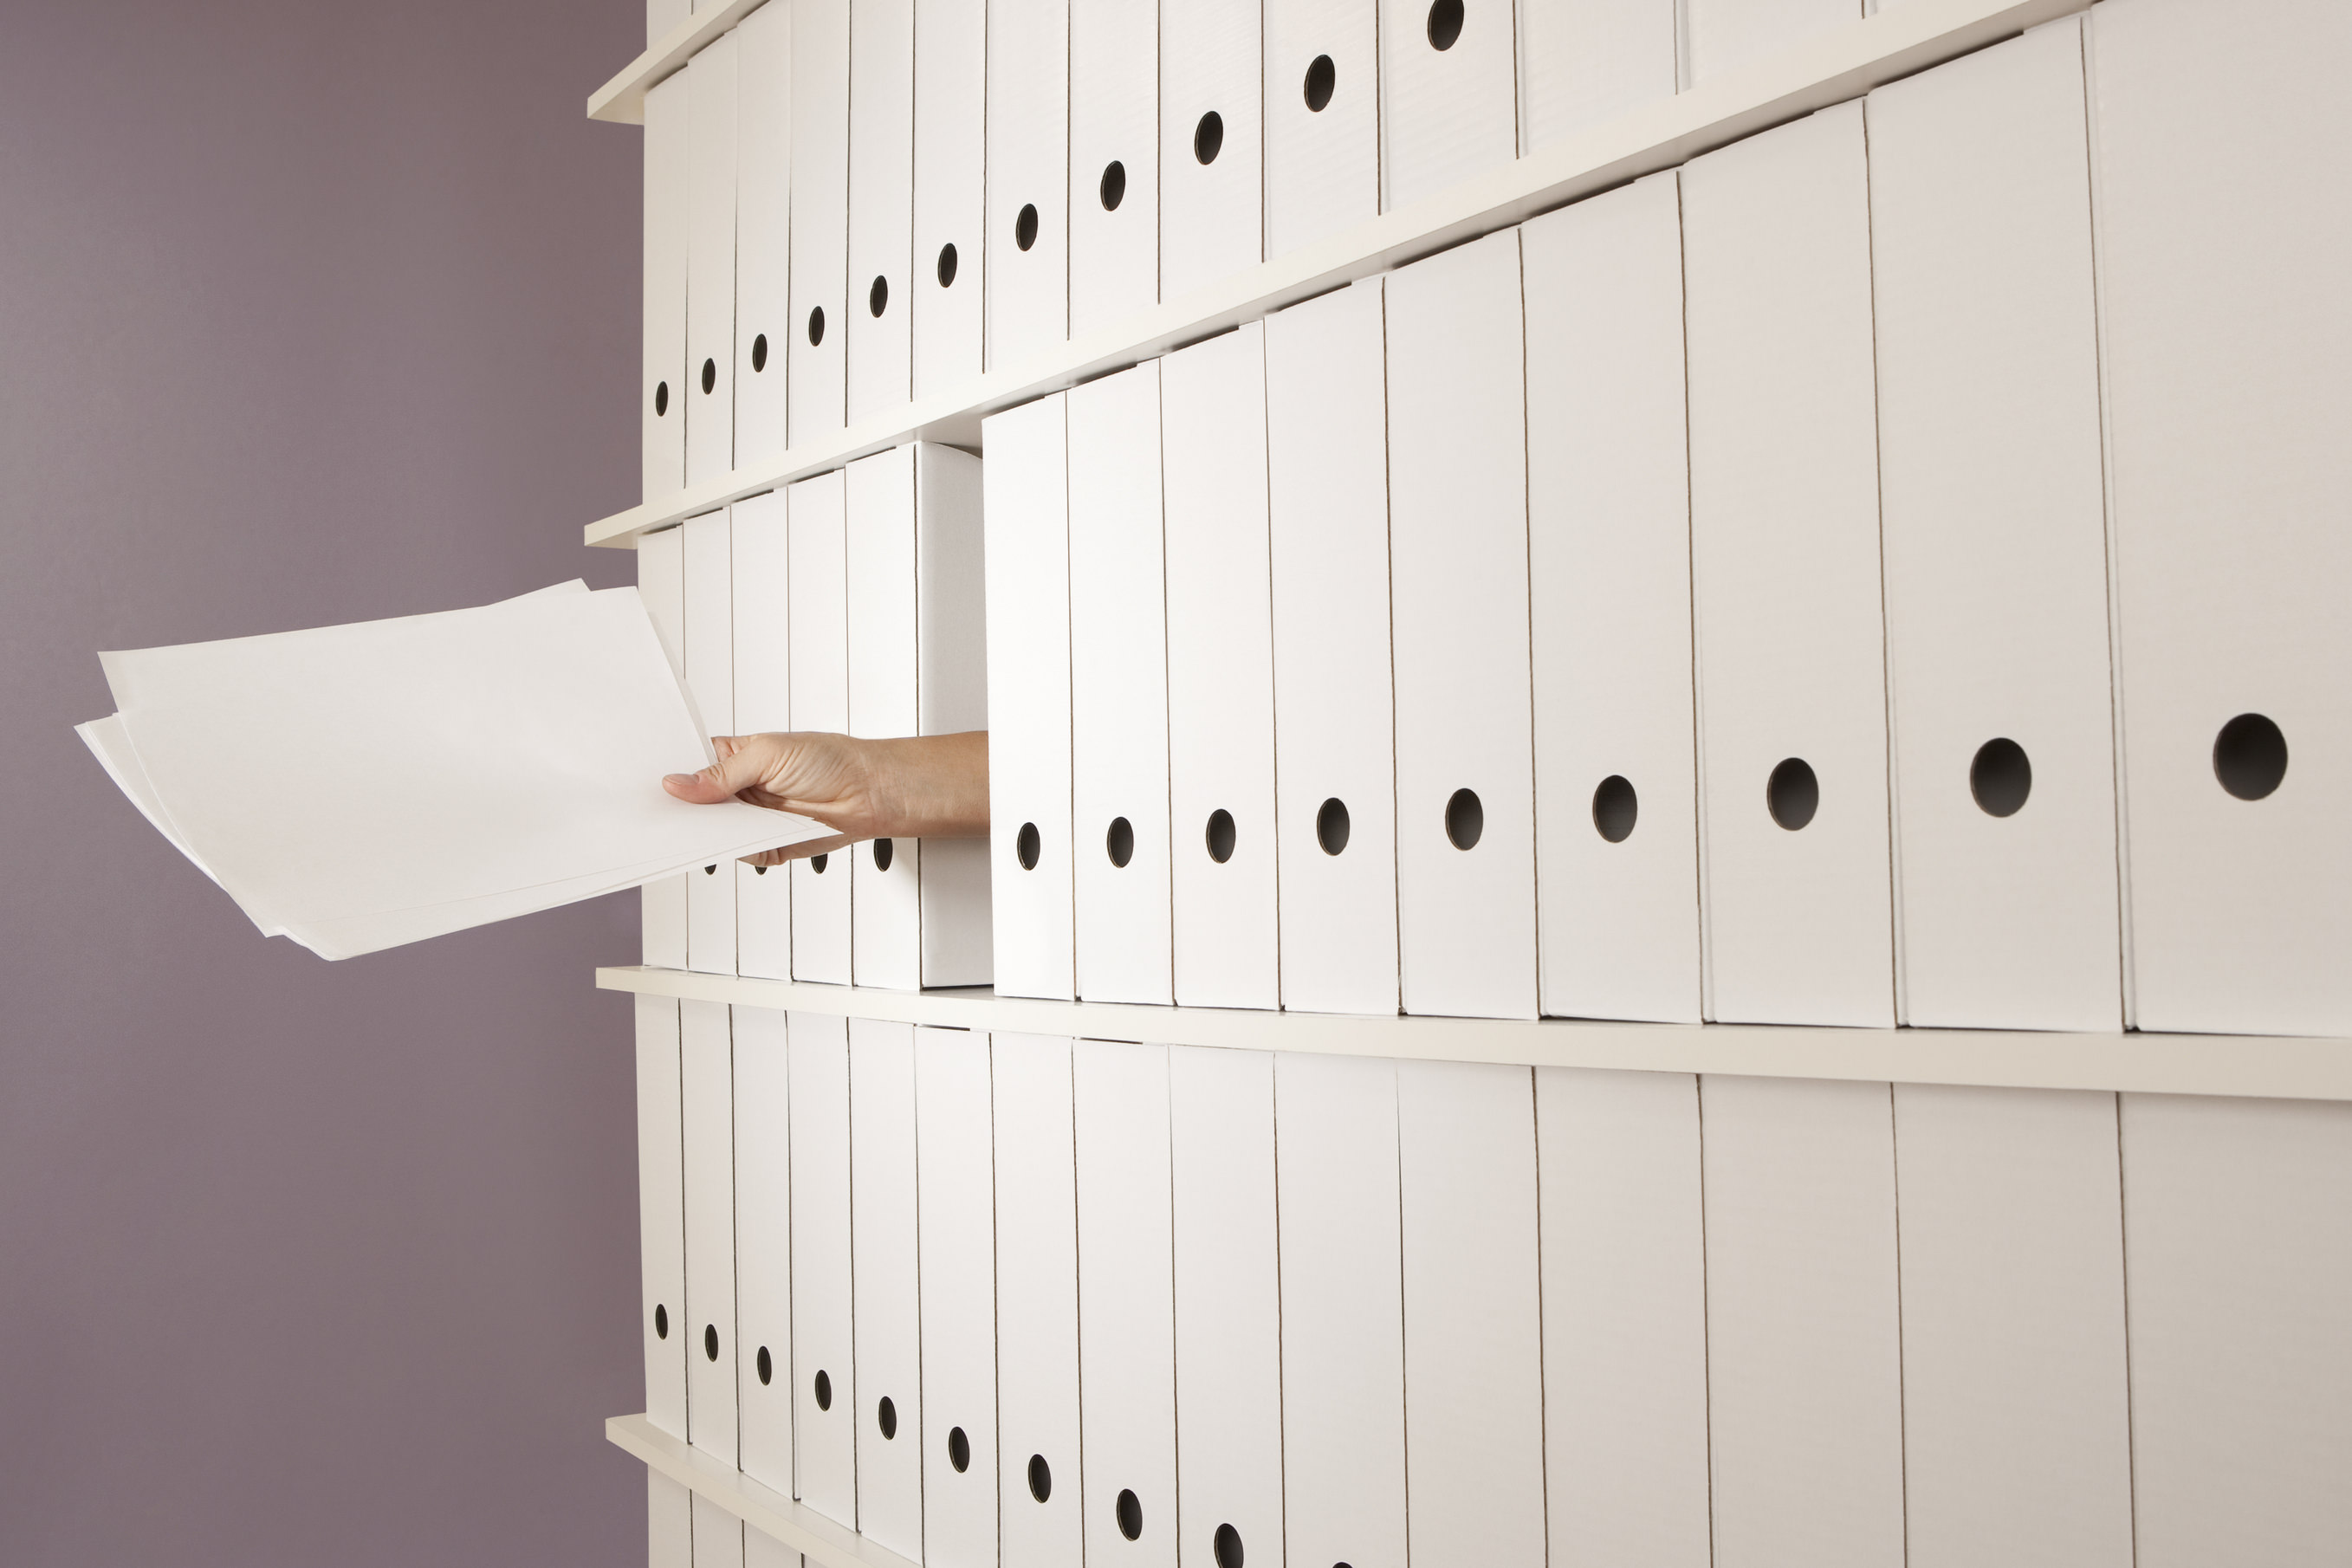 A helping hand appears through many folders and files holding the paperwork you are looking for.